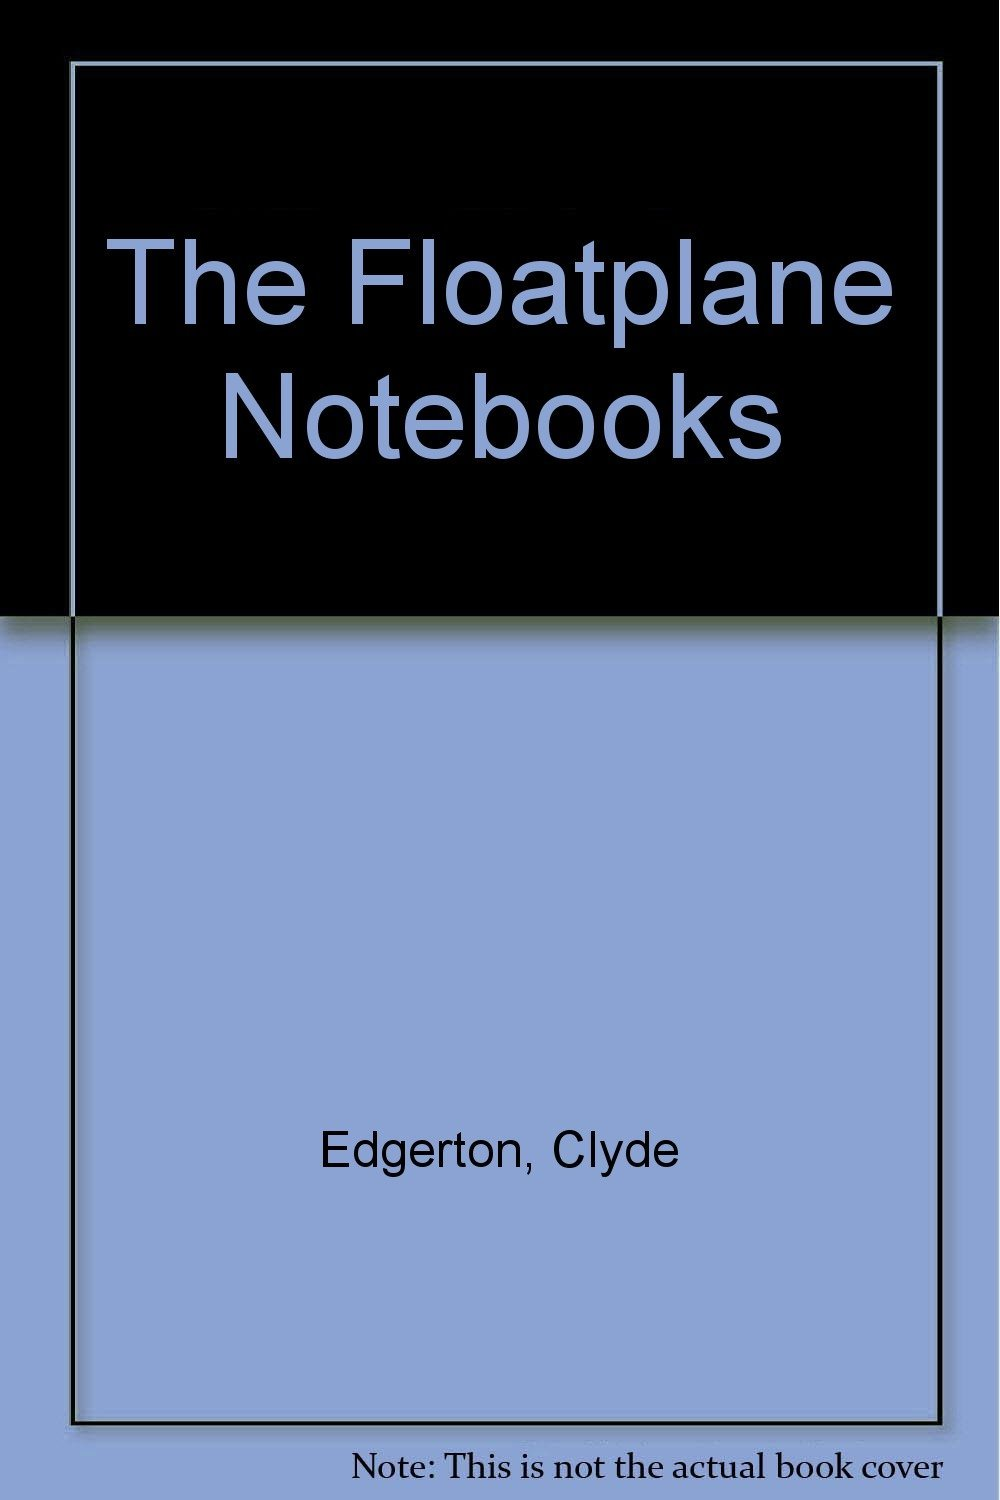 Floatplane Notebooks [Jul 26, 1990] Edgerton, Clyde